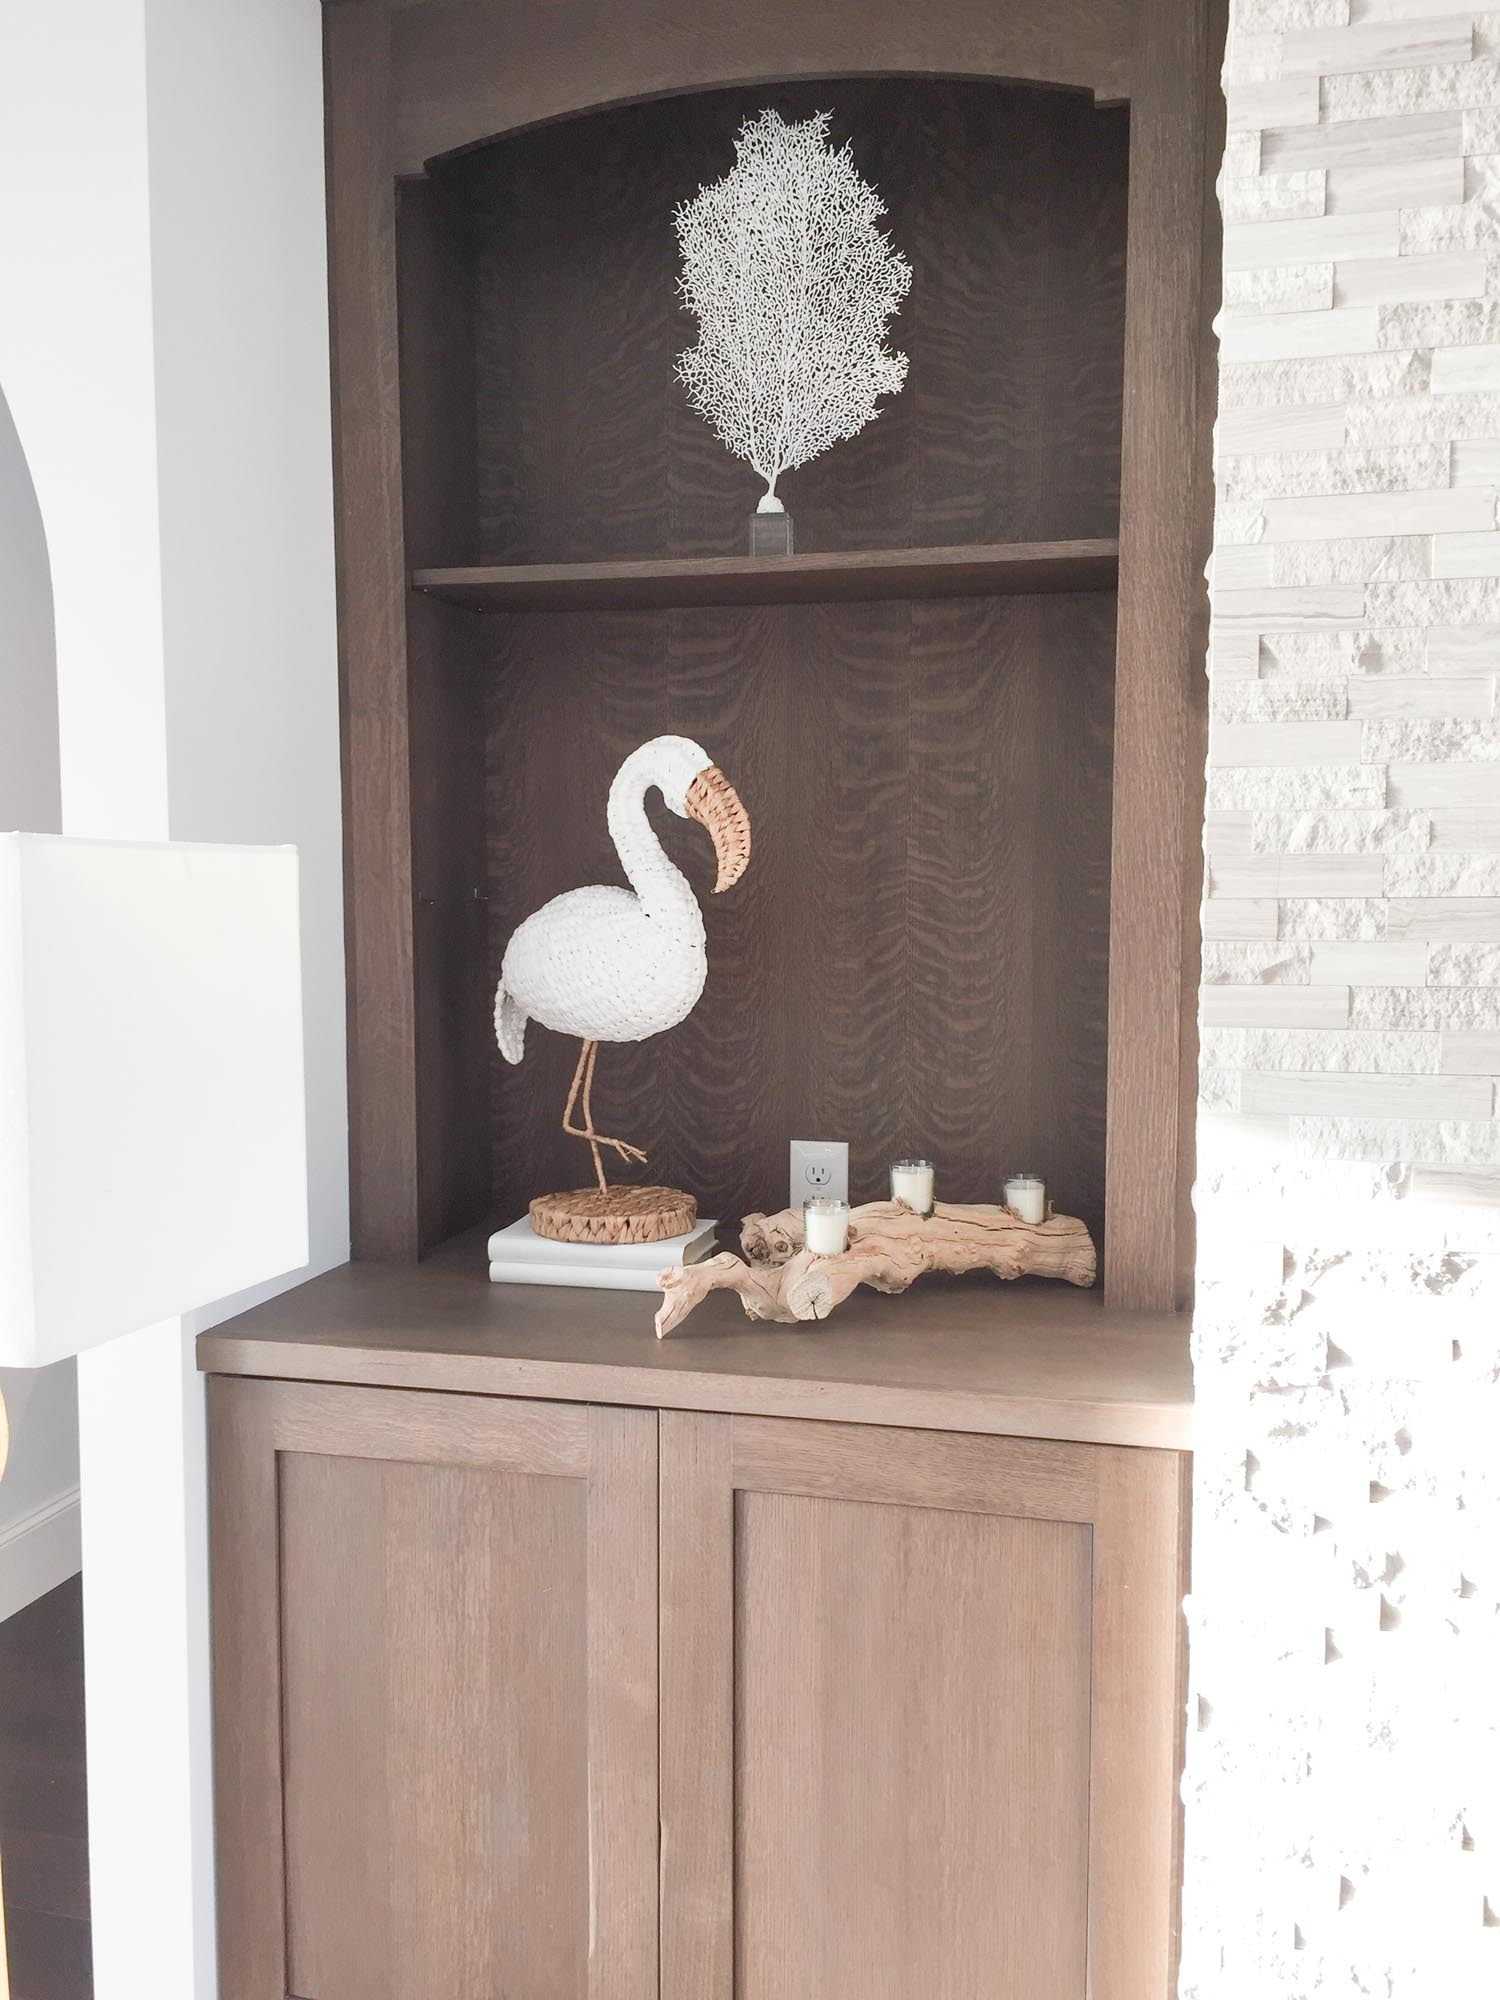 Bookcase with coral on acrylic